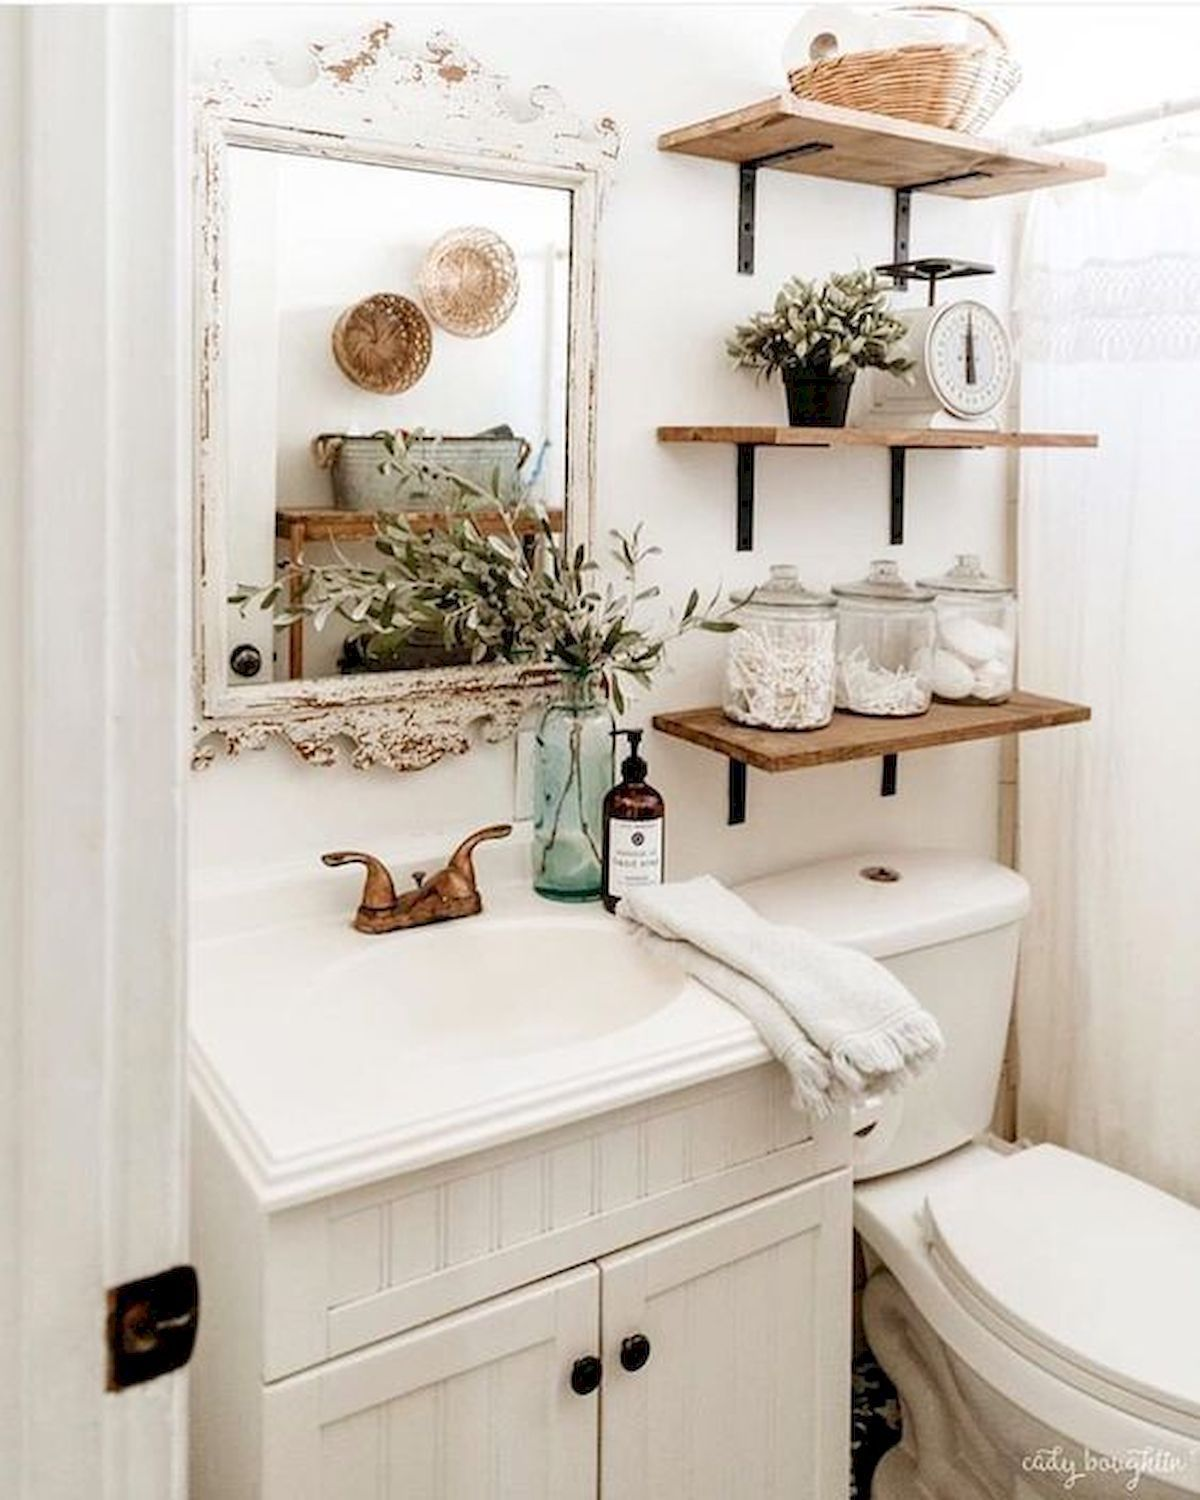 25 Creative Bathroom Storage Ideas For Small Spaces 1 Small Bathroom Decor Small Bathroom Shelves Bathroom Design Small